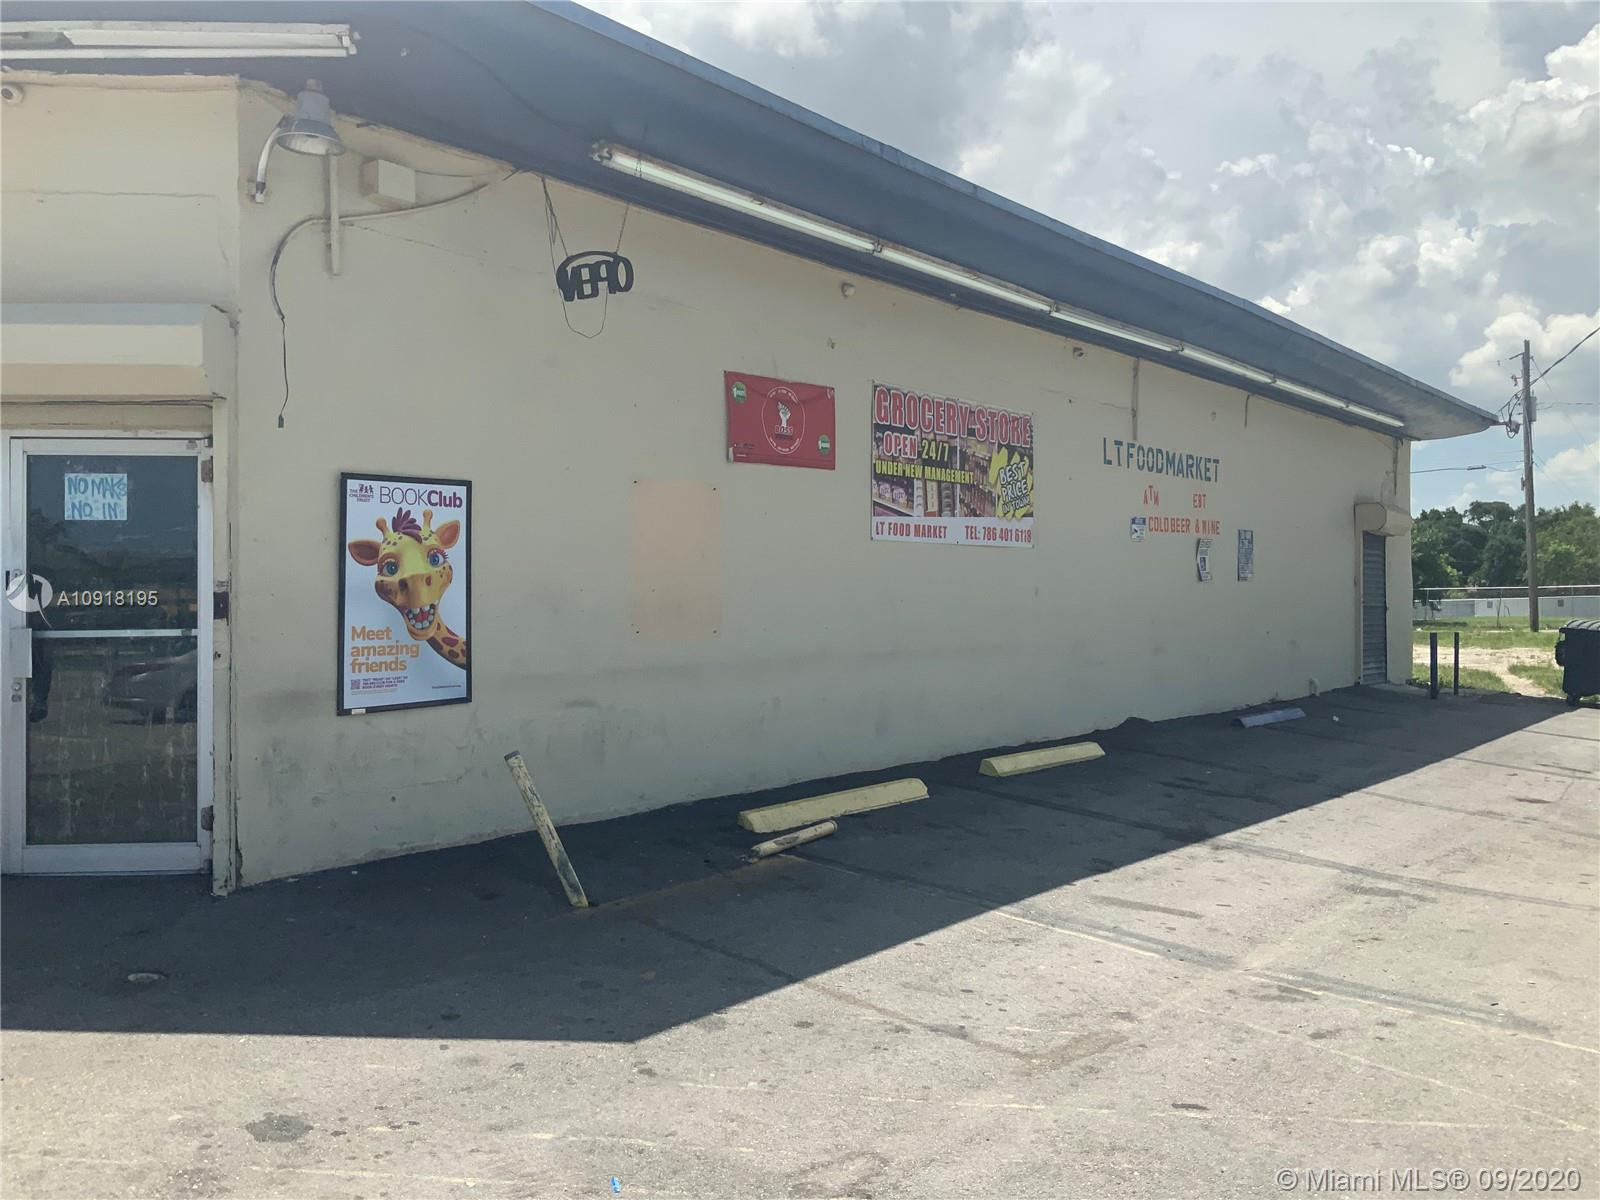 **GREAT CORNER LOT FOR DEVELOPERS ON A OPPORTUNITY ZONE JUST PERFECT FOR A MULTI FAMILIES APARTMENTS OR KEEP AS AN INCOME PRODUCING. LONG TERM RENTAL INCOME TENANT, $2675.00 MONTLY. CALL ME GOT CONTRACTOR WITH PROPOSAL IN HAND.